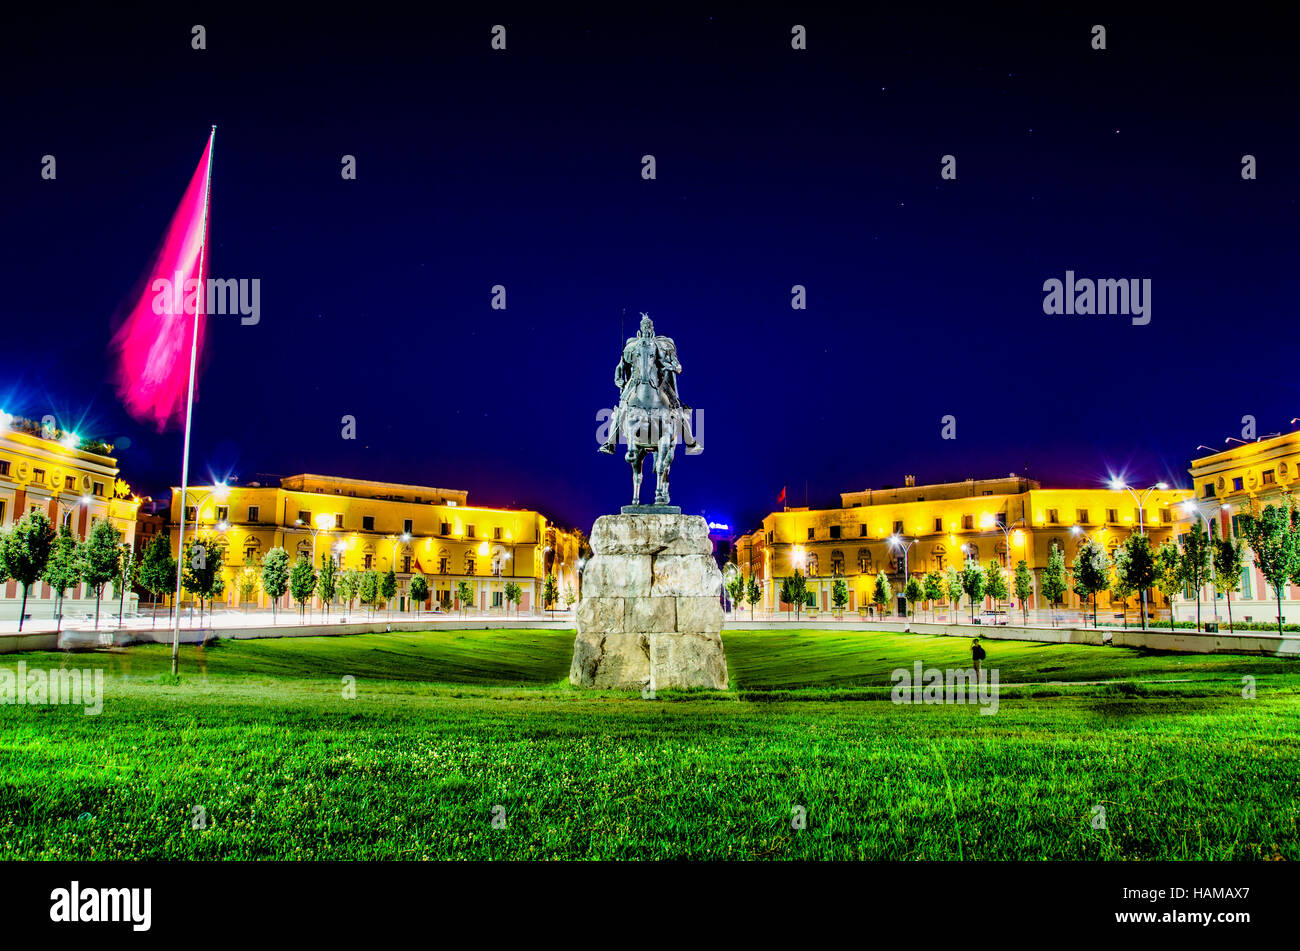 Skanderbeg Square with his statue in Tirana - Albania - Stock Image